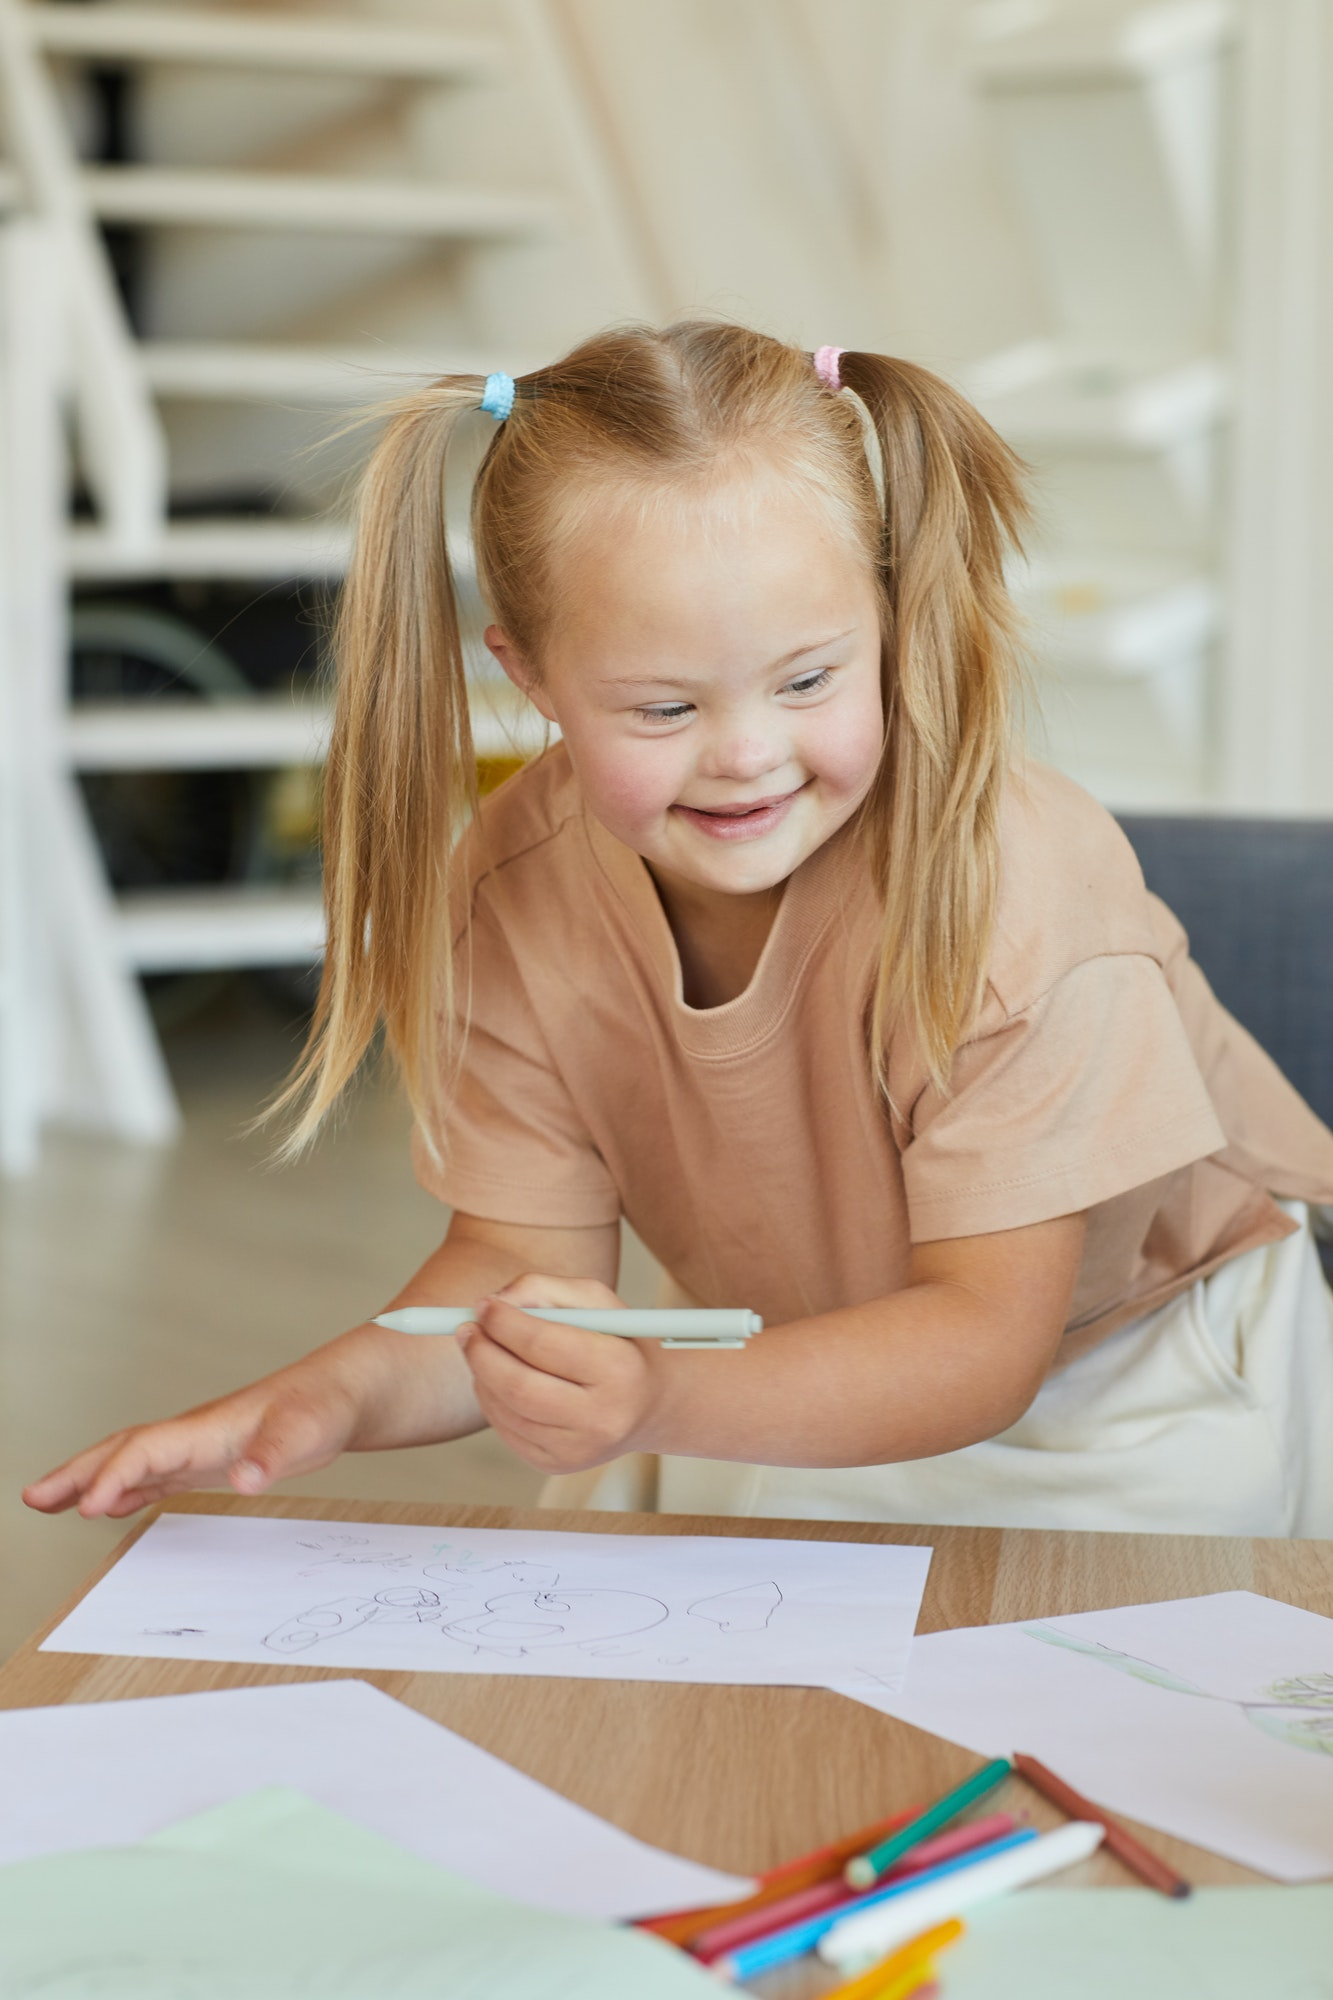 Cheerful Girl with Down Syndrome Enjoying Drawing